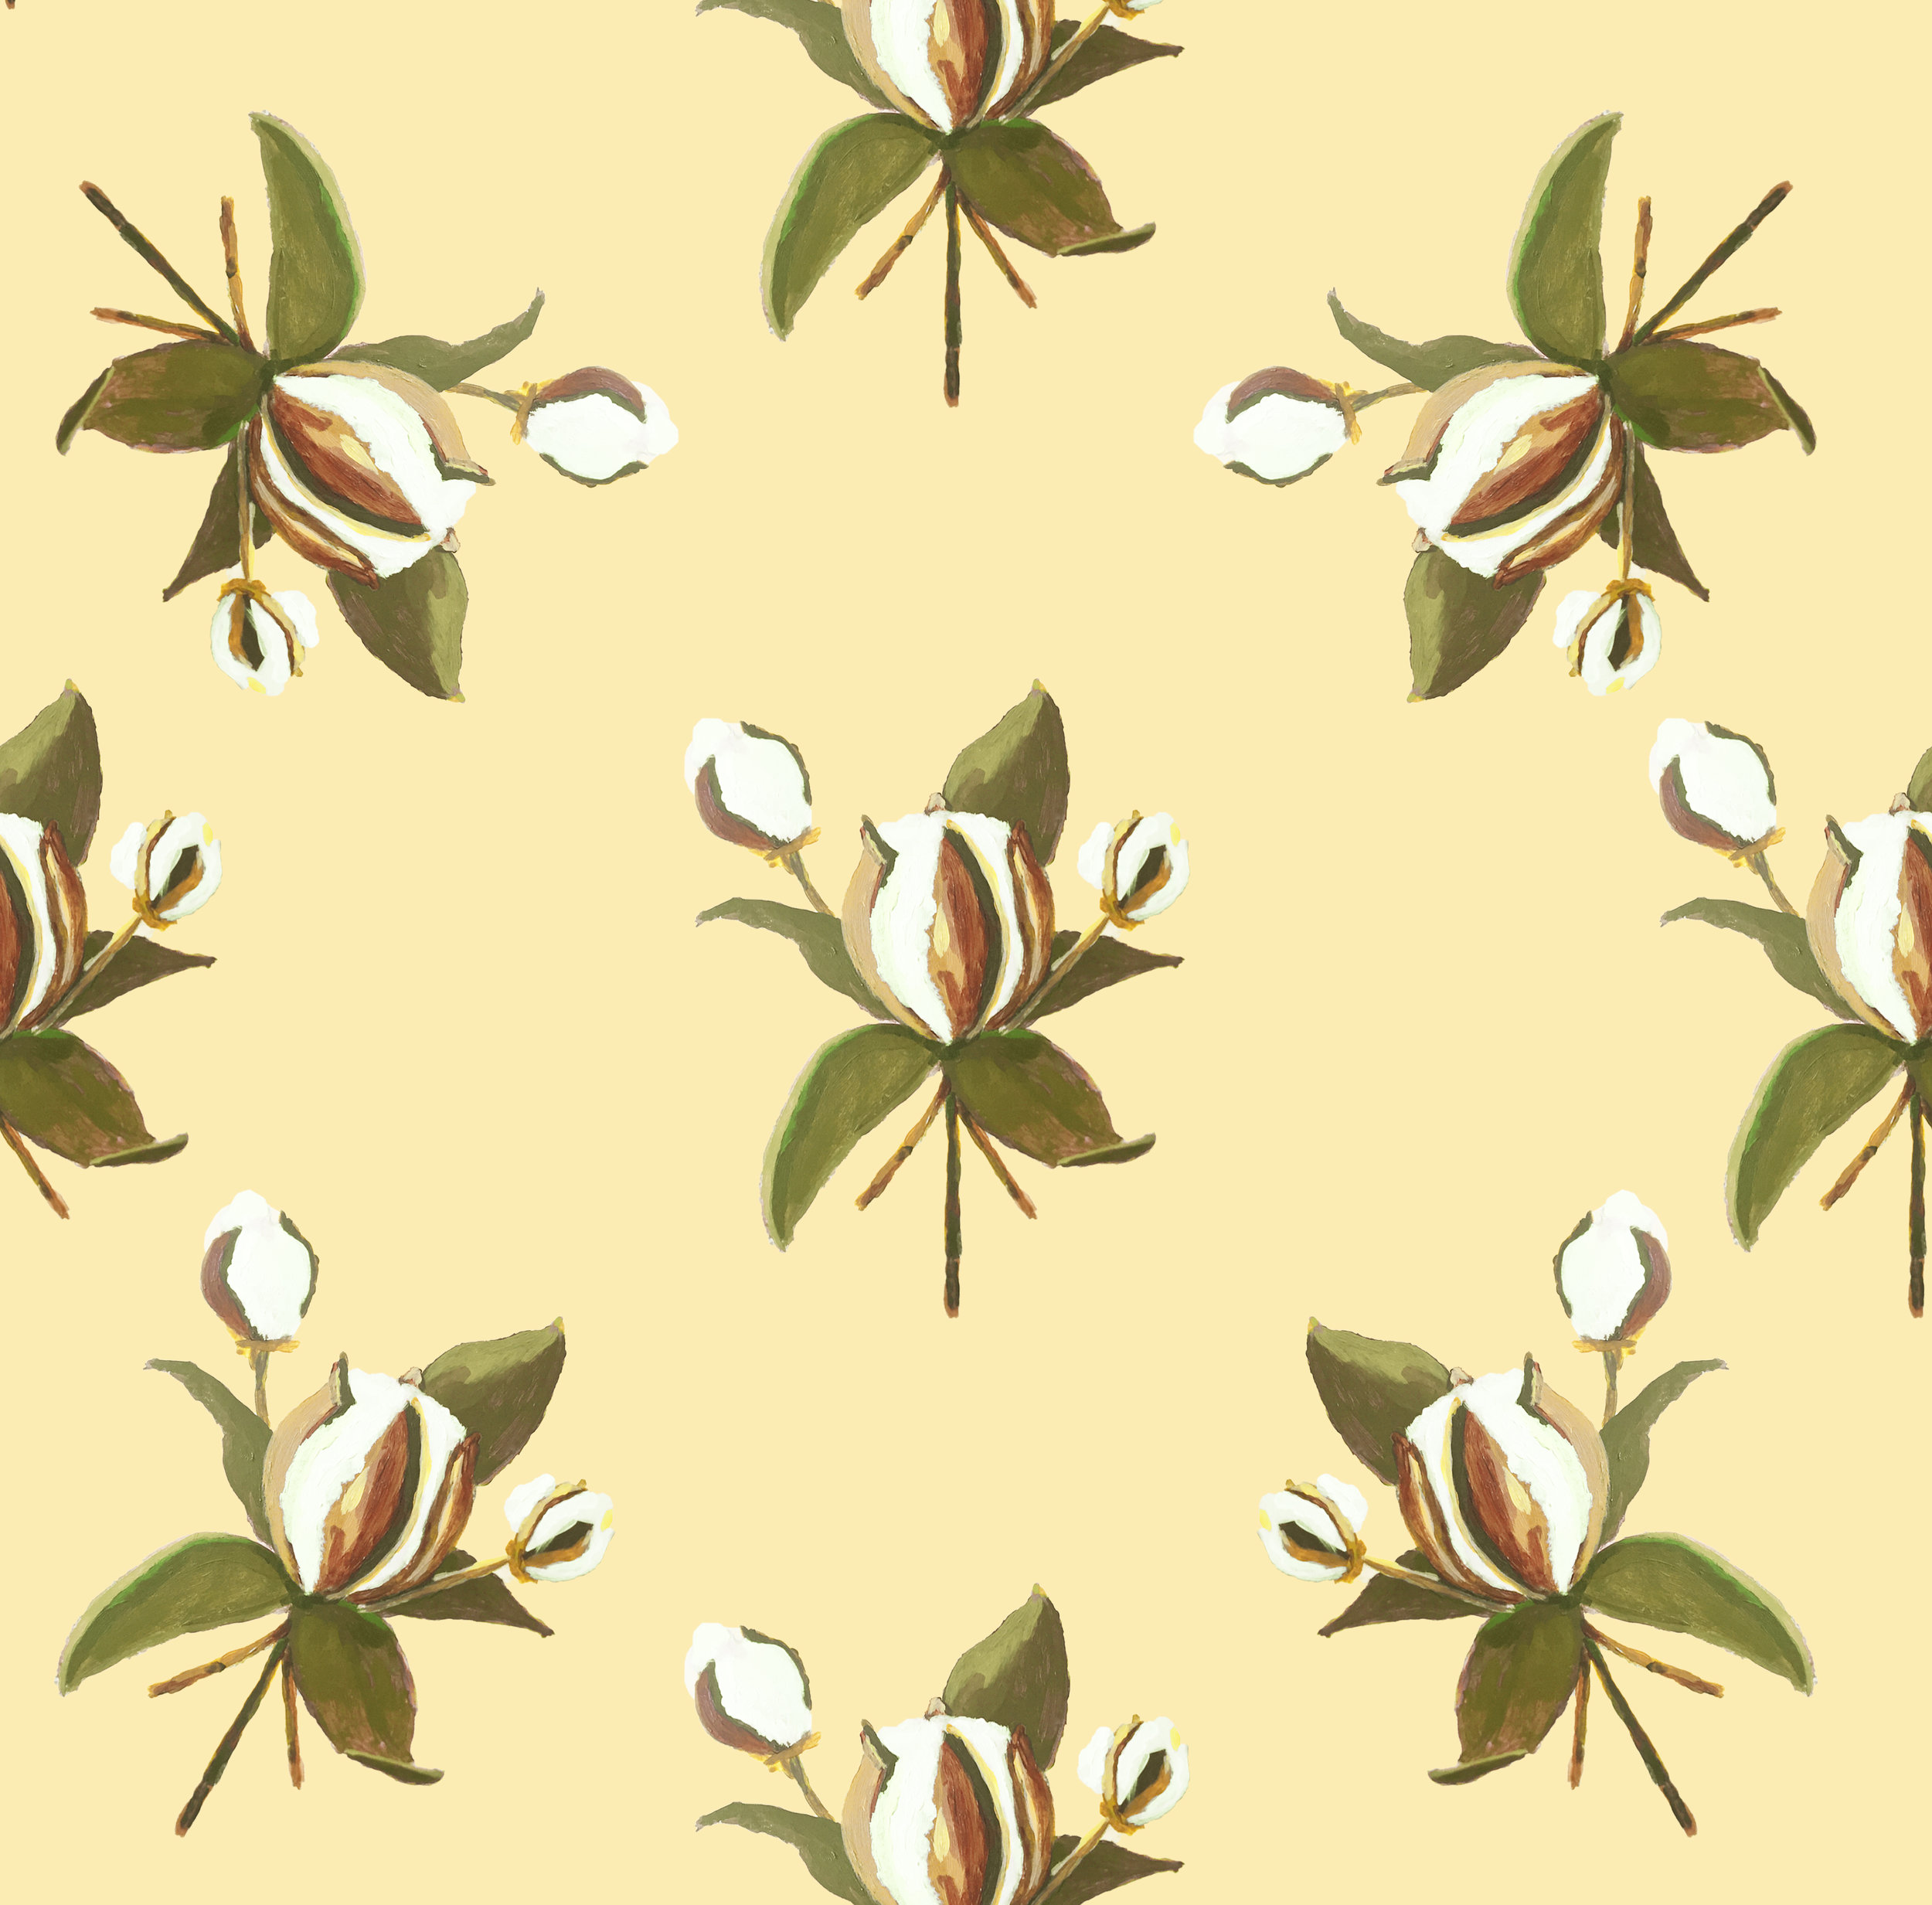 "Title: Cotton & Magnolia (Wallpaper) Artist: Jon Key Year: 2016 Medium: Digital print of painting Dimensions: 24"" x 108"" Price: $250/roll, edition of 100"